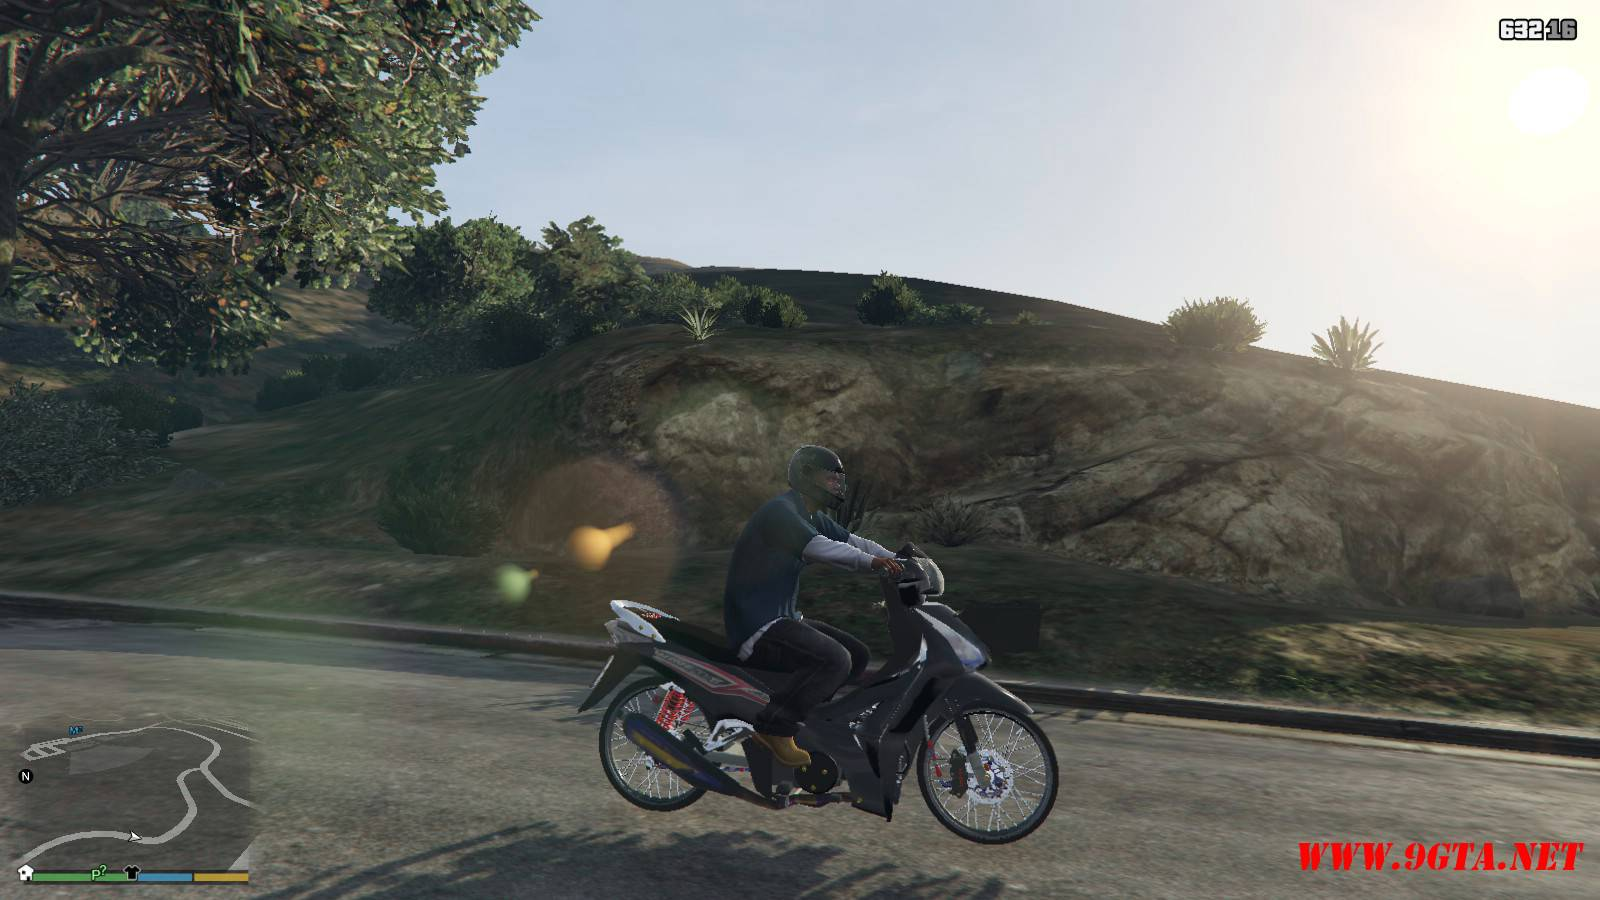 2015 Honda Wave 125i Mod For GTA5 (15)